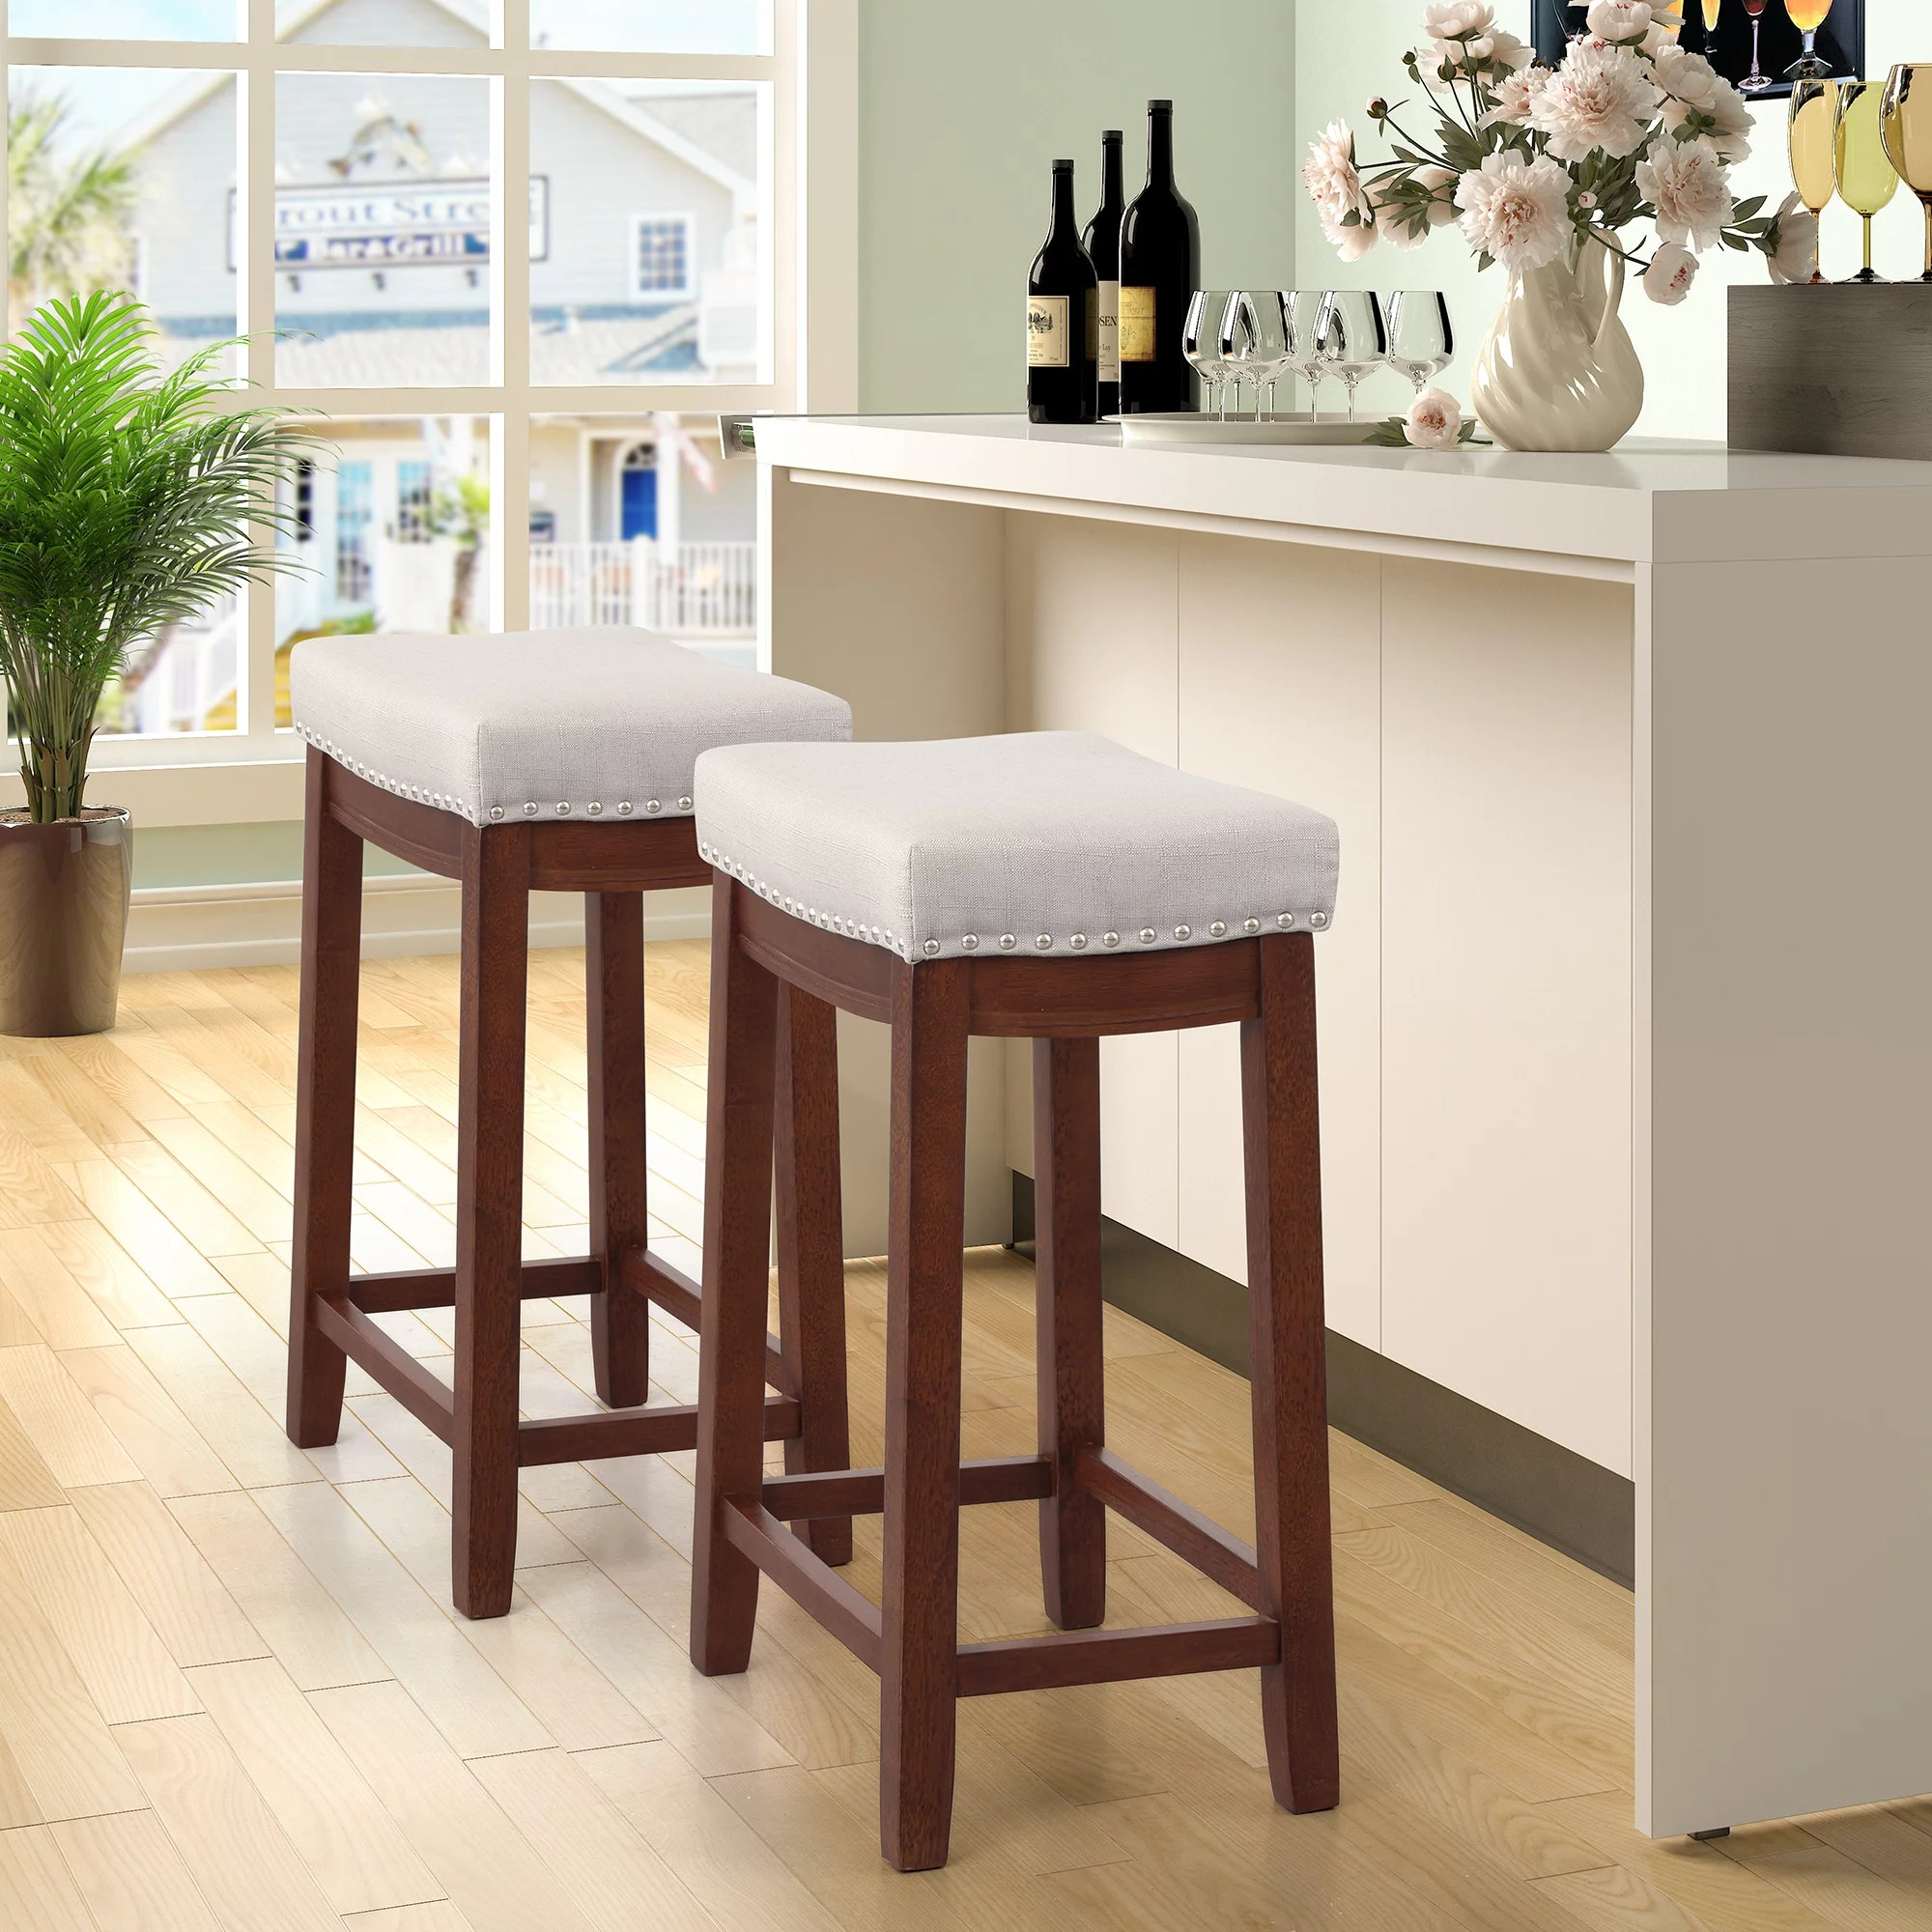 clearance outdoor patio bar stools set of 2 24 quot counter on Outdoor Patio Bar Stools Clearance id=73647